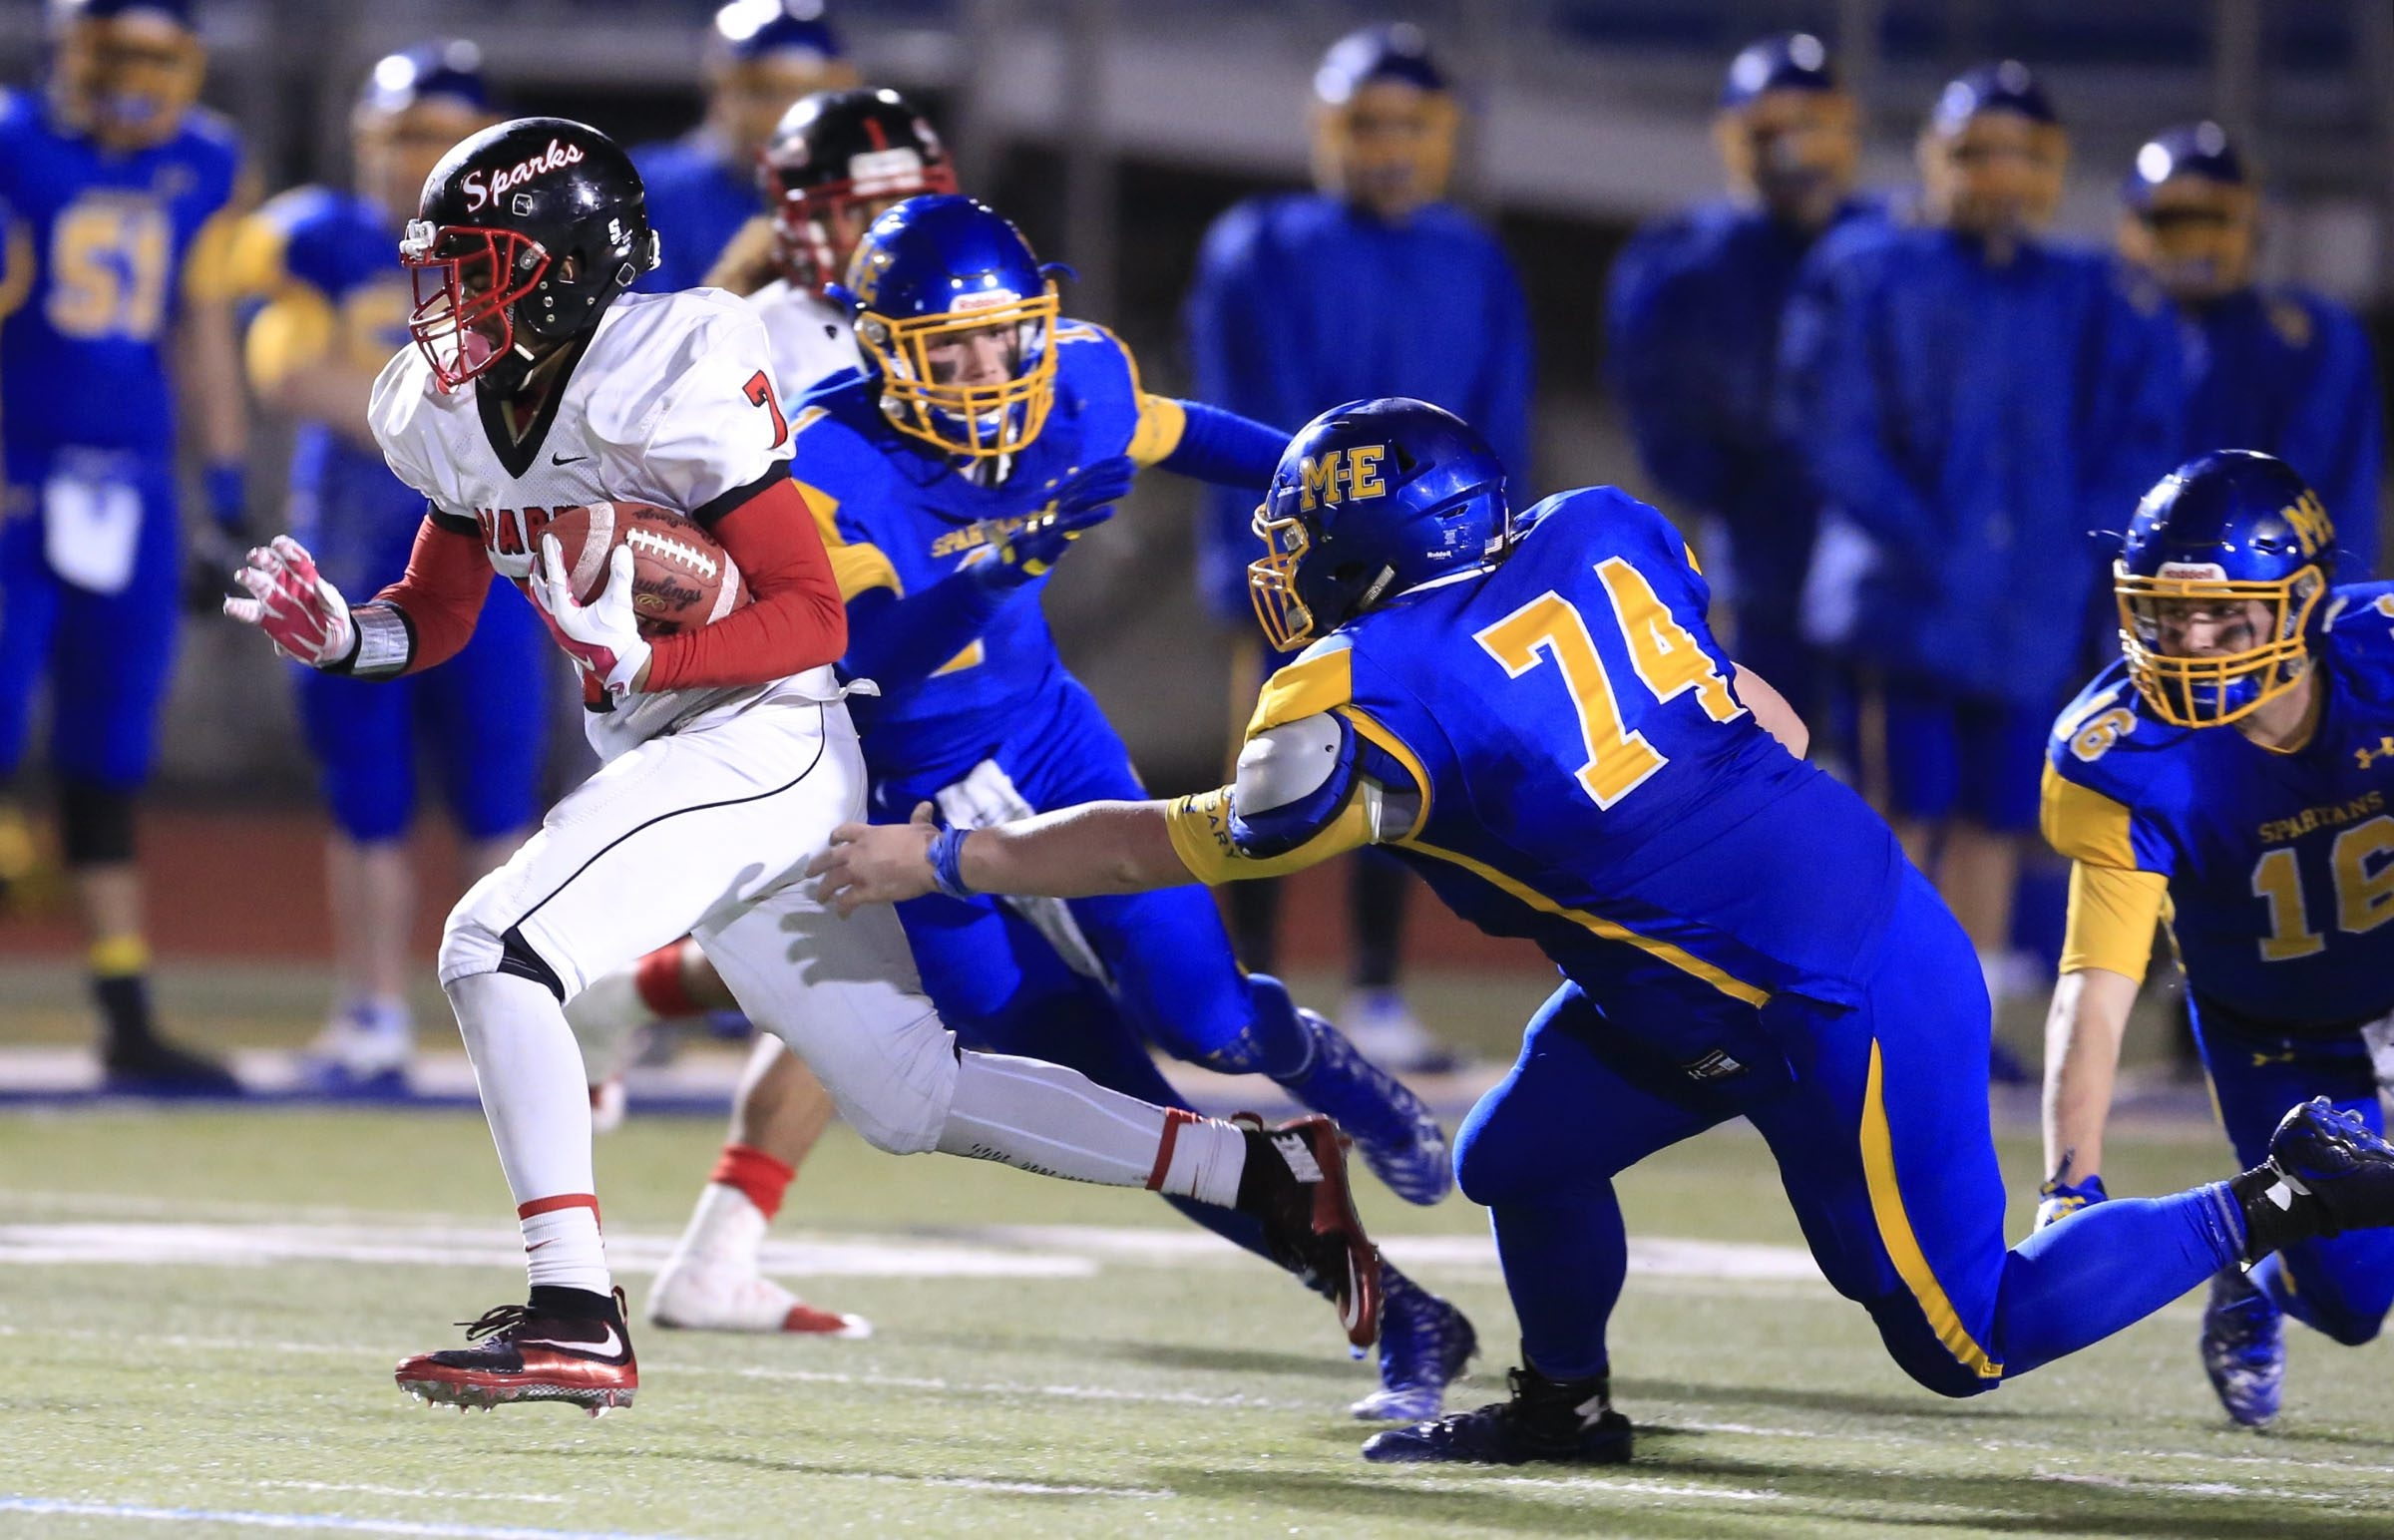 South Park quarterback Tyree Brown was the key figure in the Sparks' historic win over Maine-Endwell in the semifinals of the state playoffs.